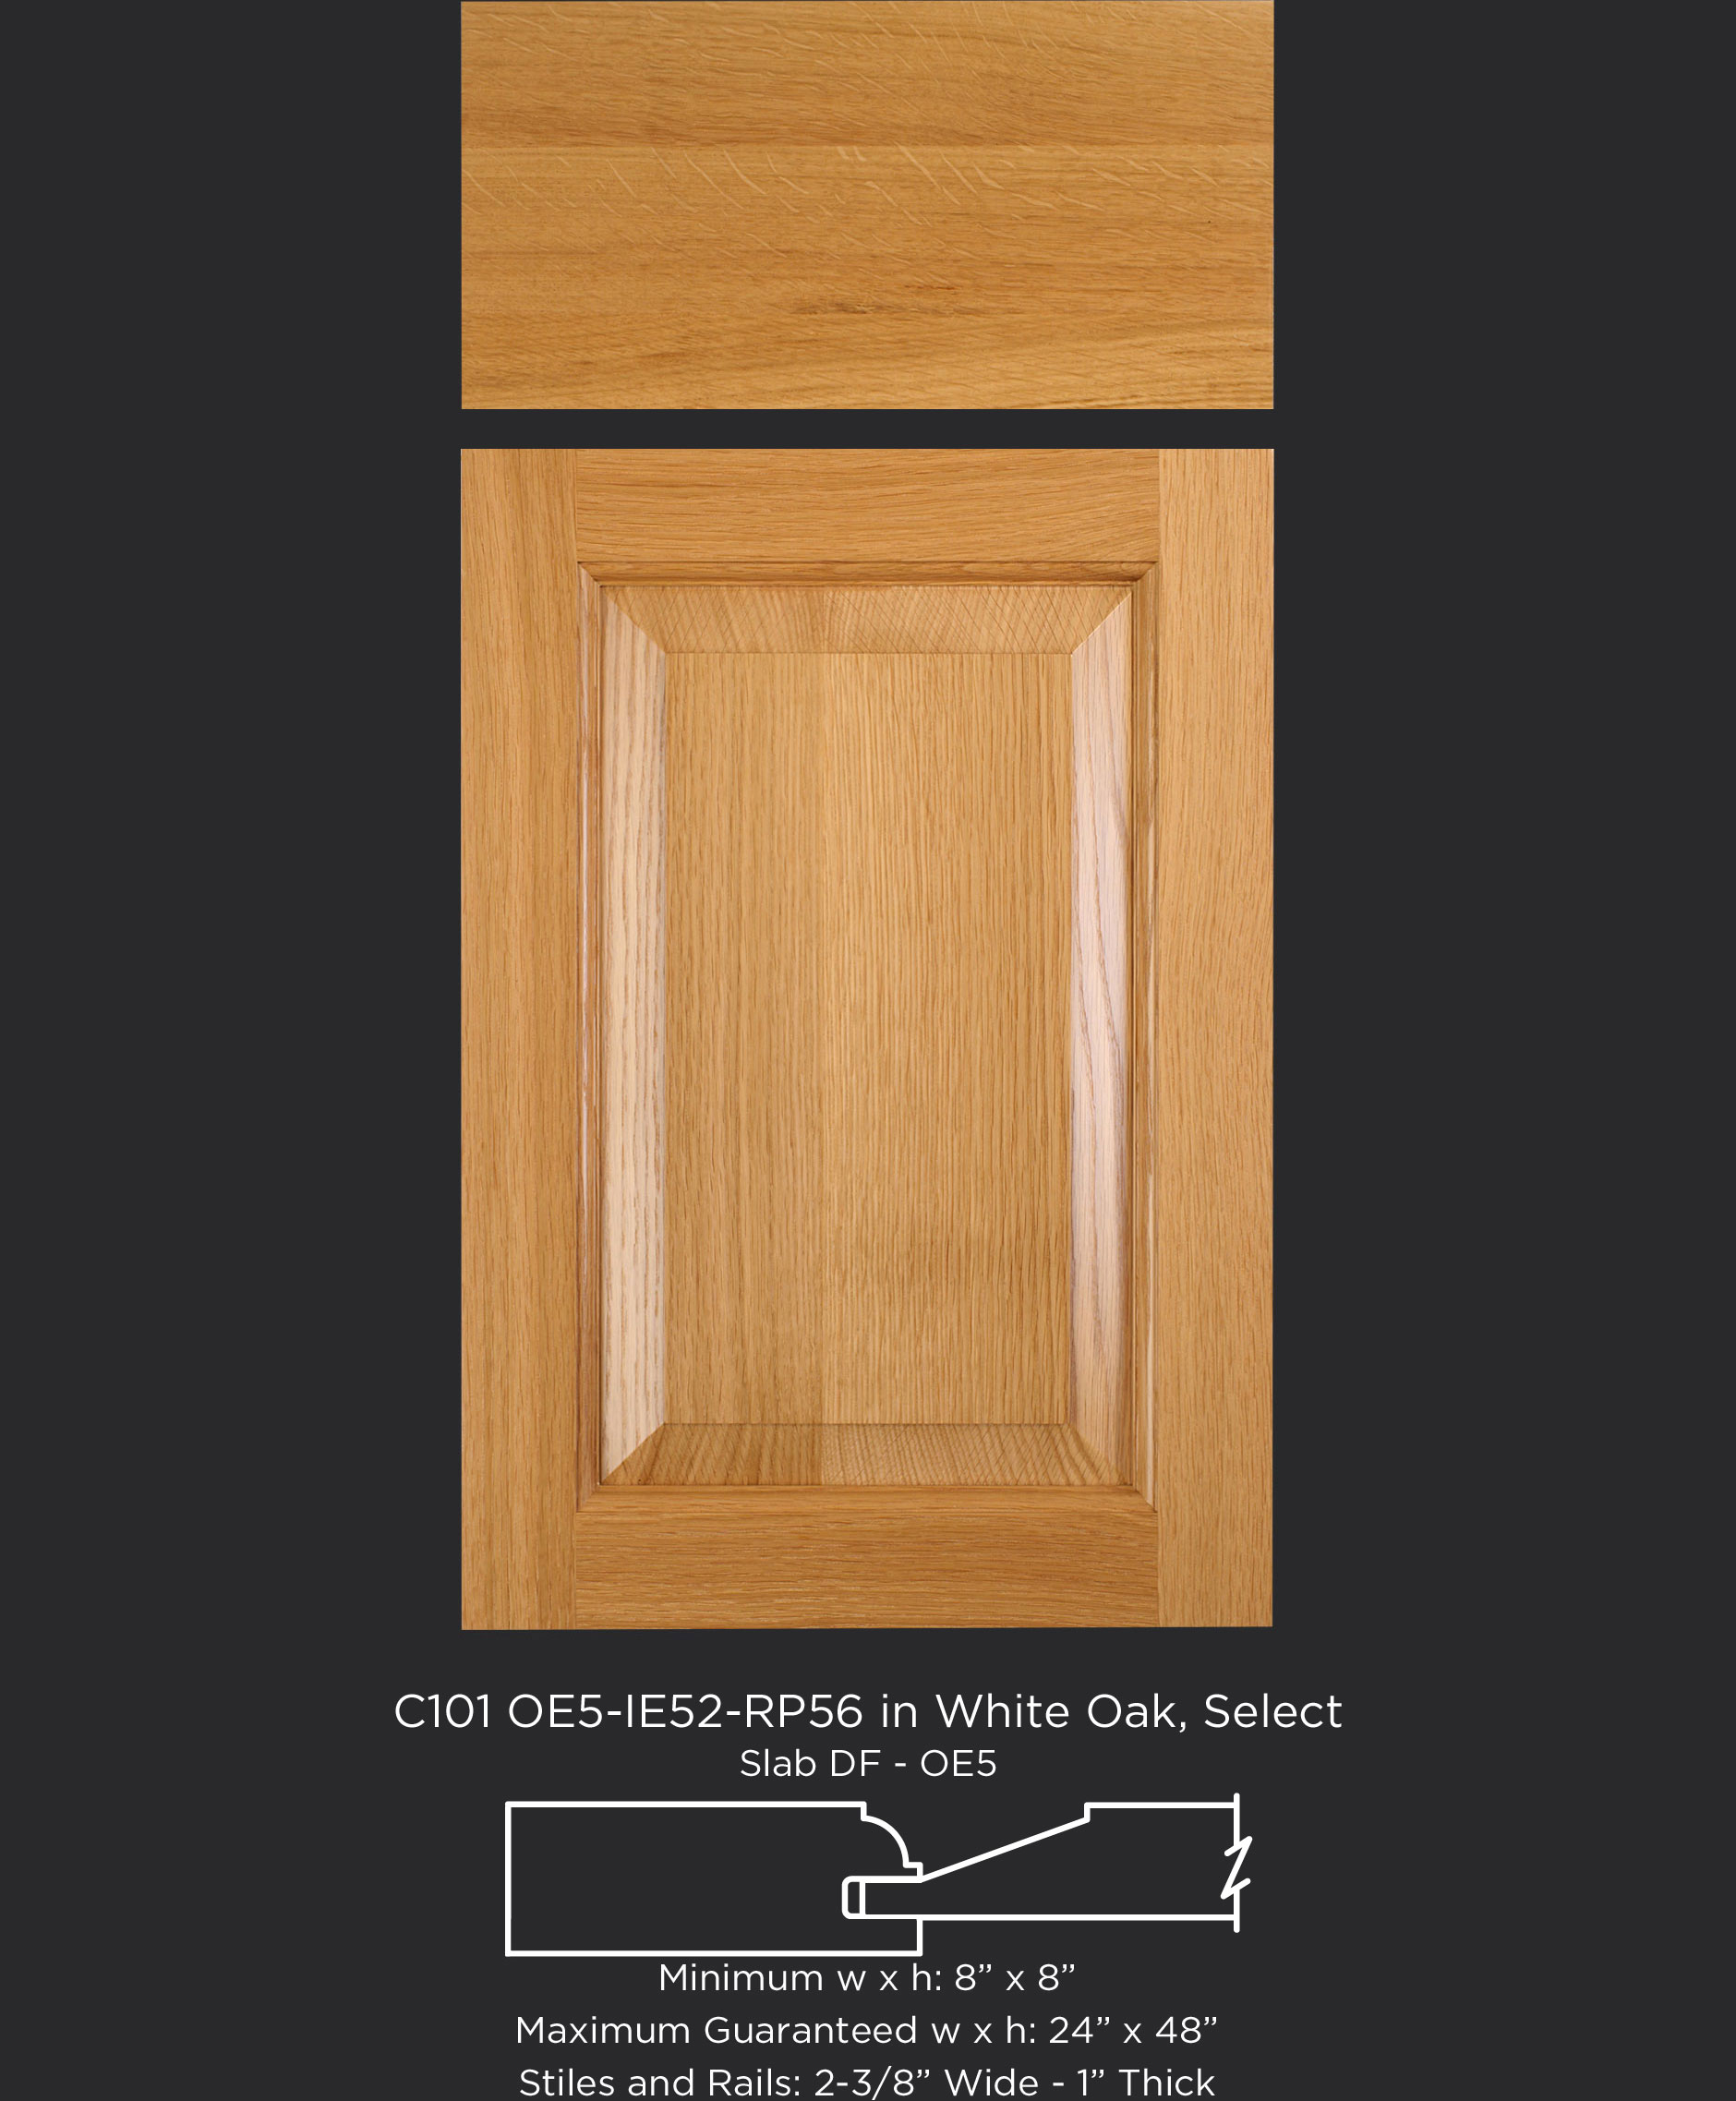 "1"" Thick Cope and Stick Cabinet Door C101 OE5-IE52-RP56 in White Oak, Select with slab drawer front"